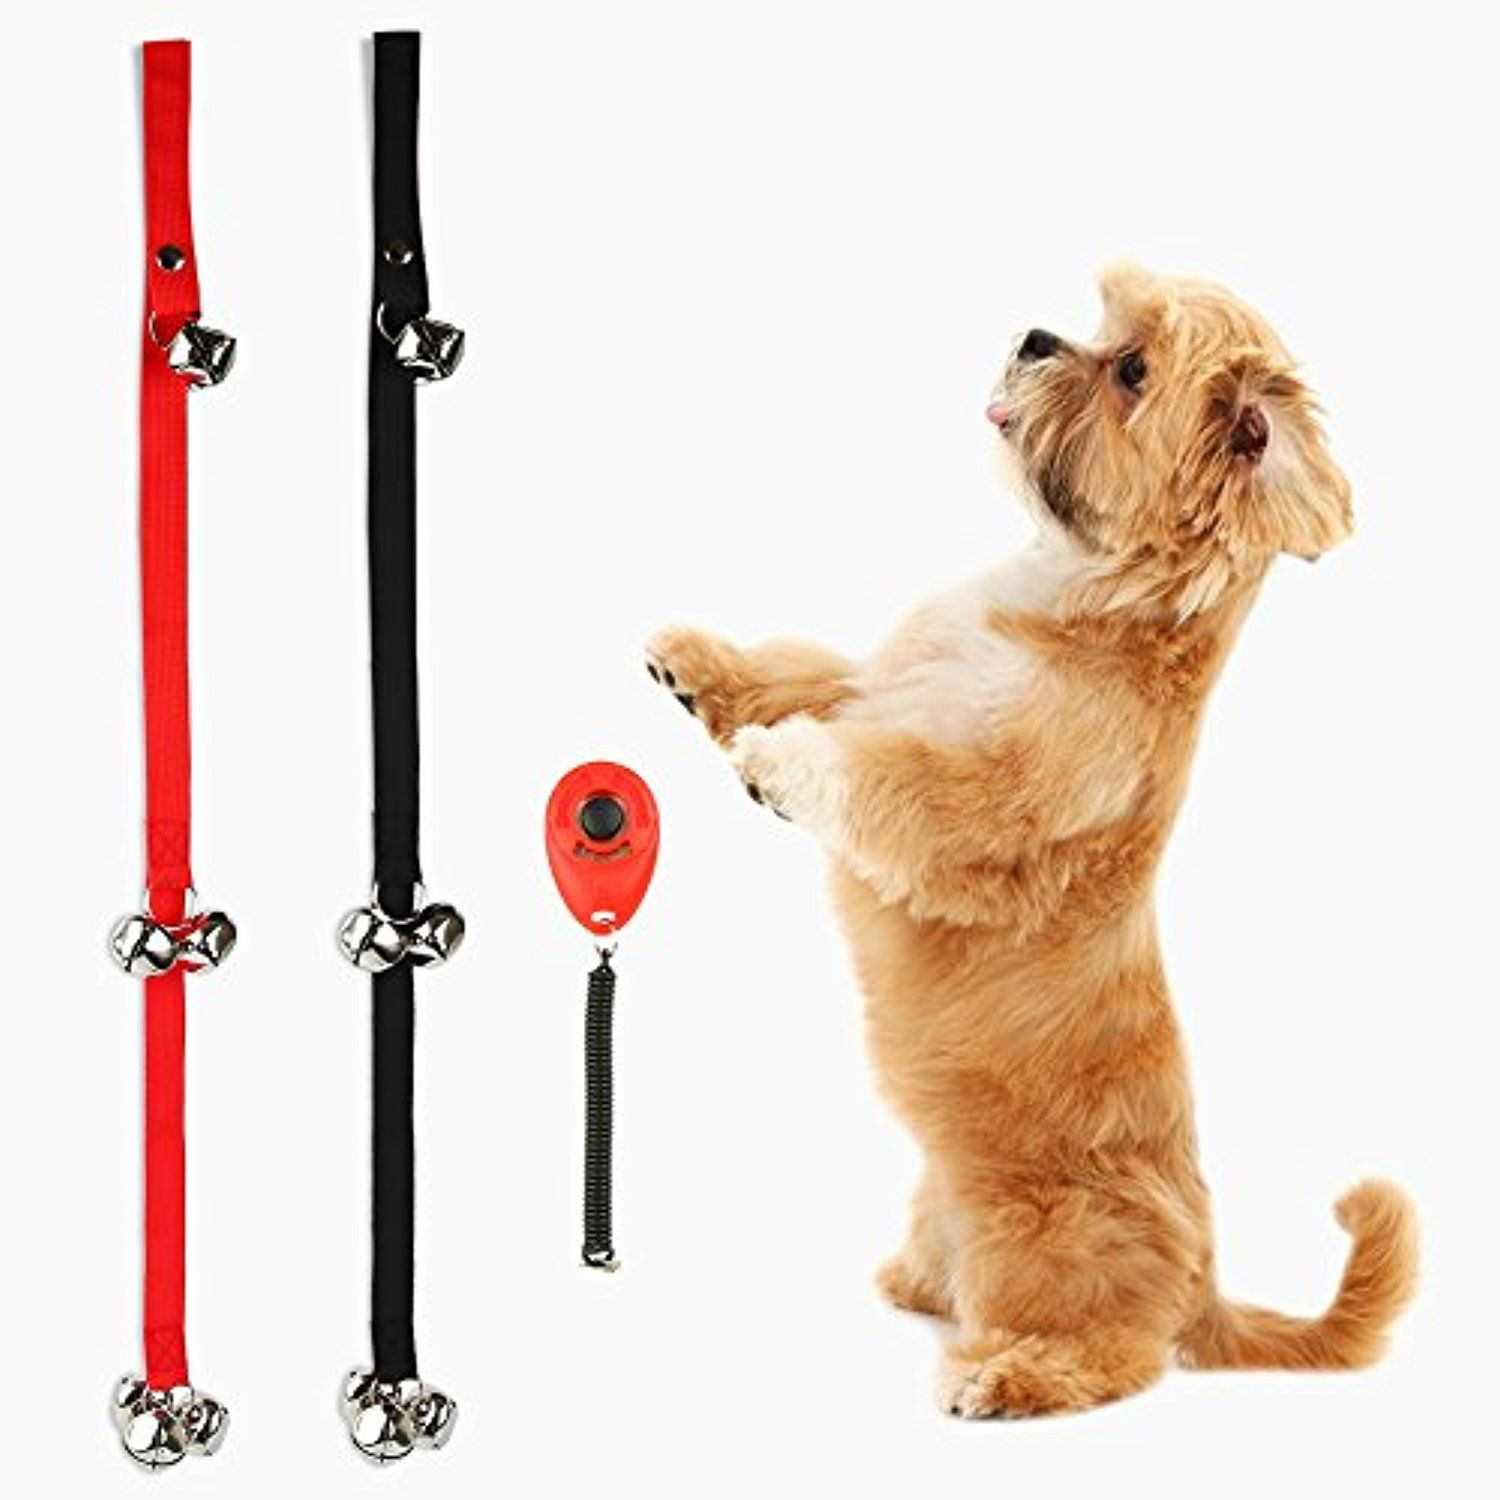 2 Pack Dog Doorbells For Dog Training And Housebreaking Your Doggy